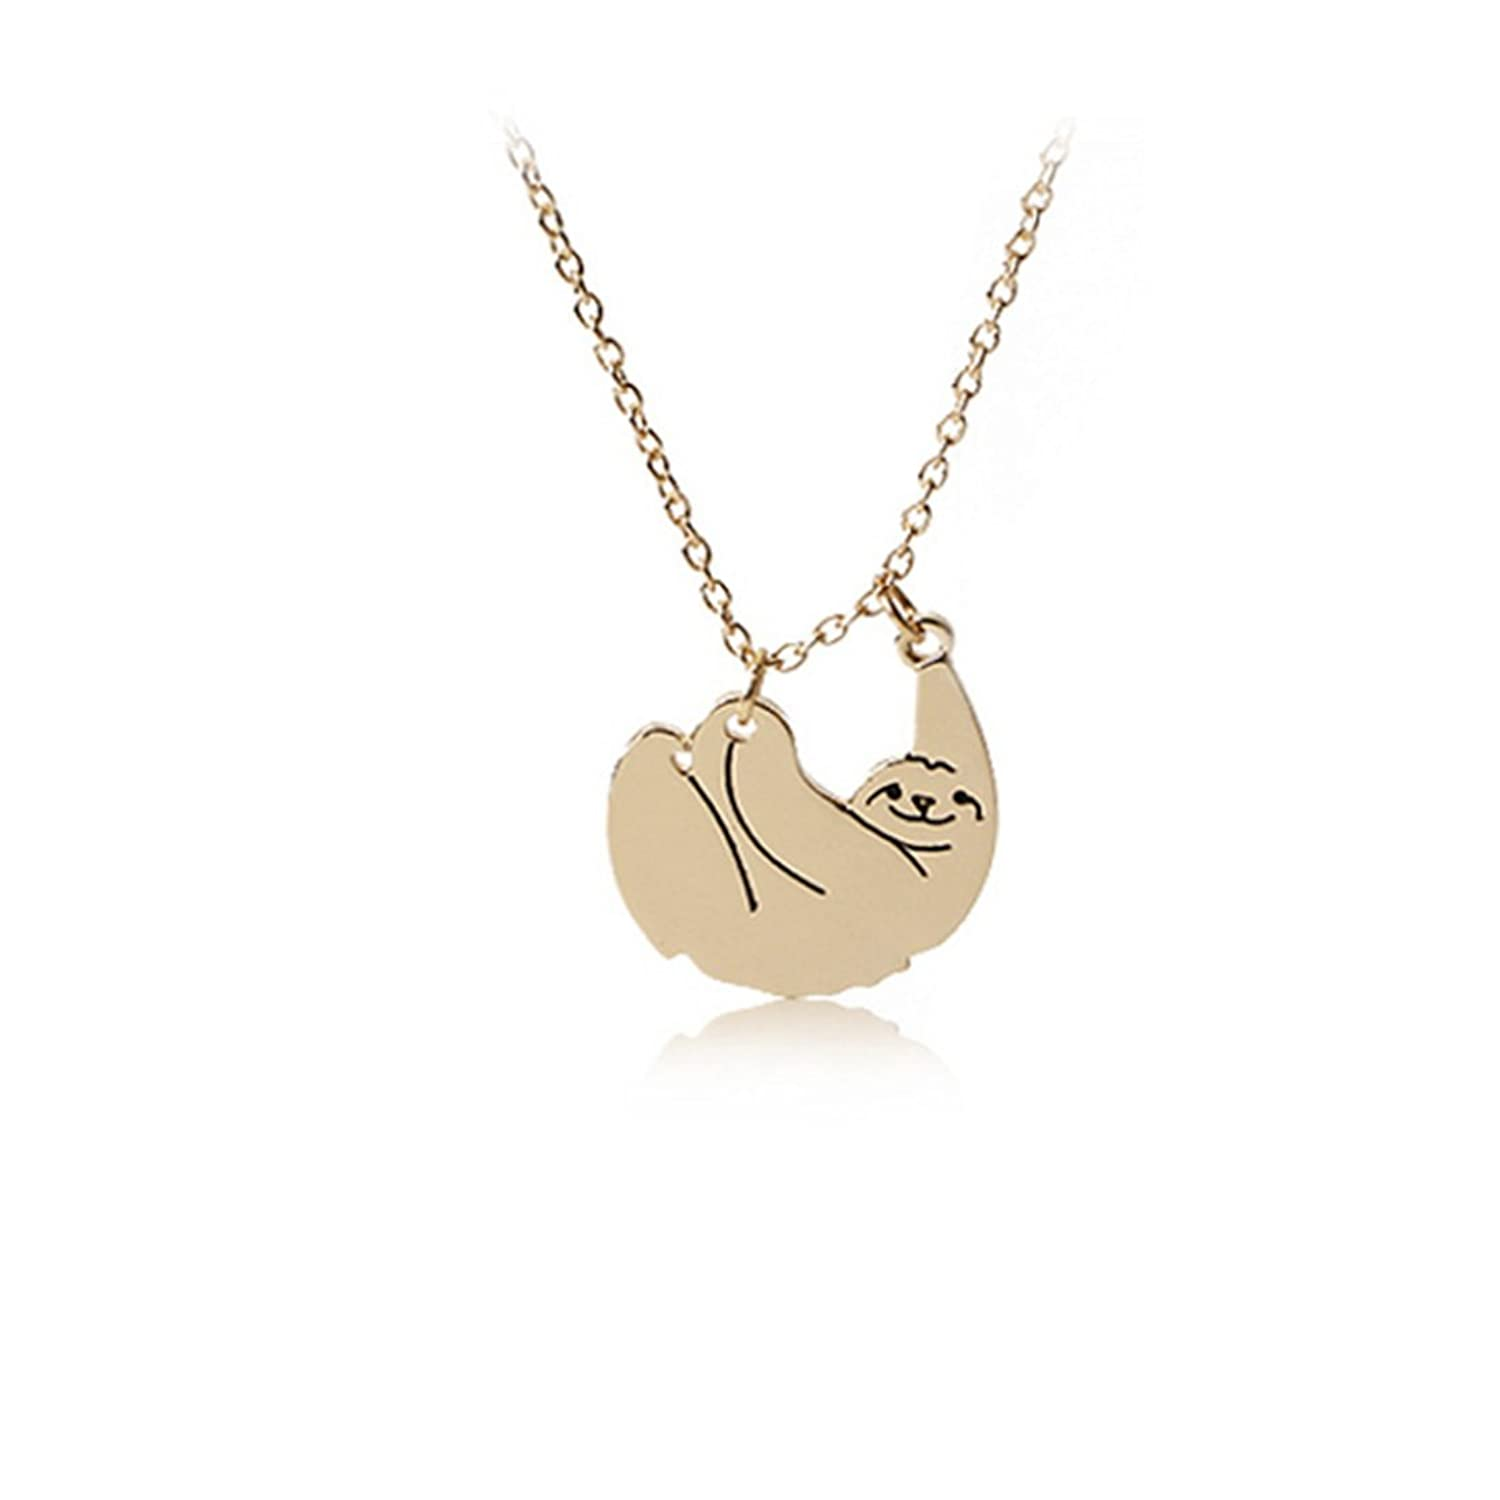 charm cute sloth aristocrat deviantart necklace on mad art pendant by